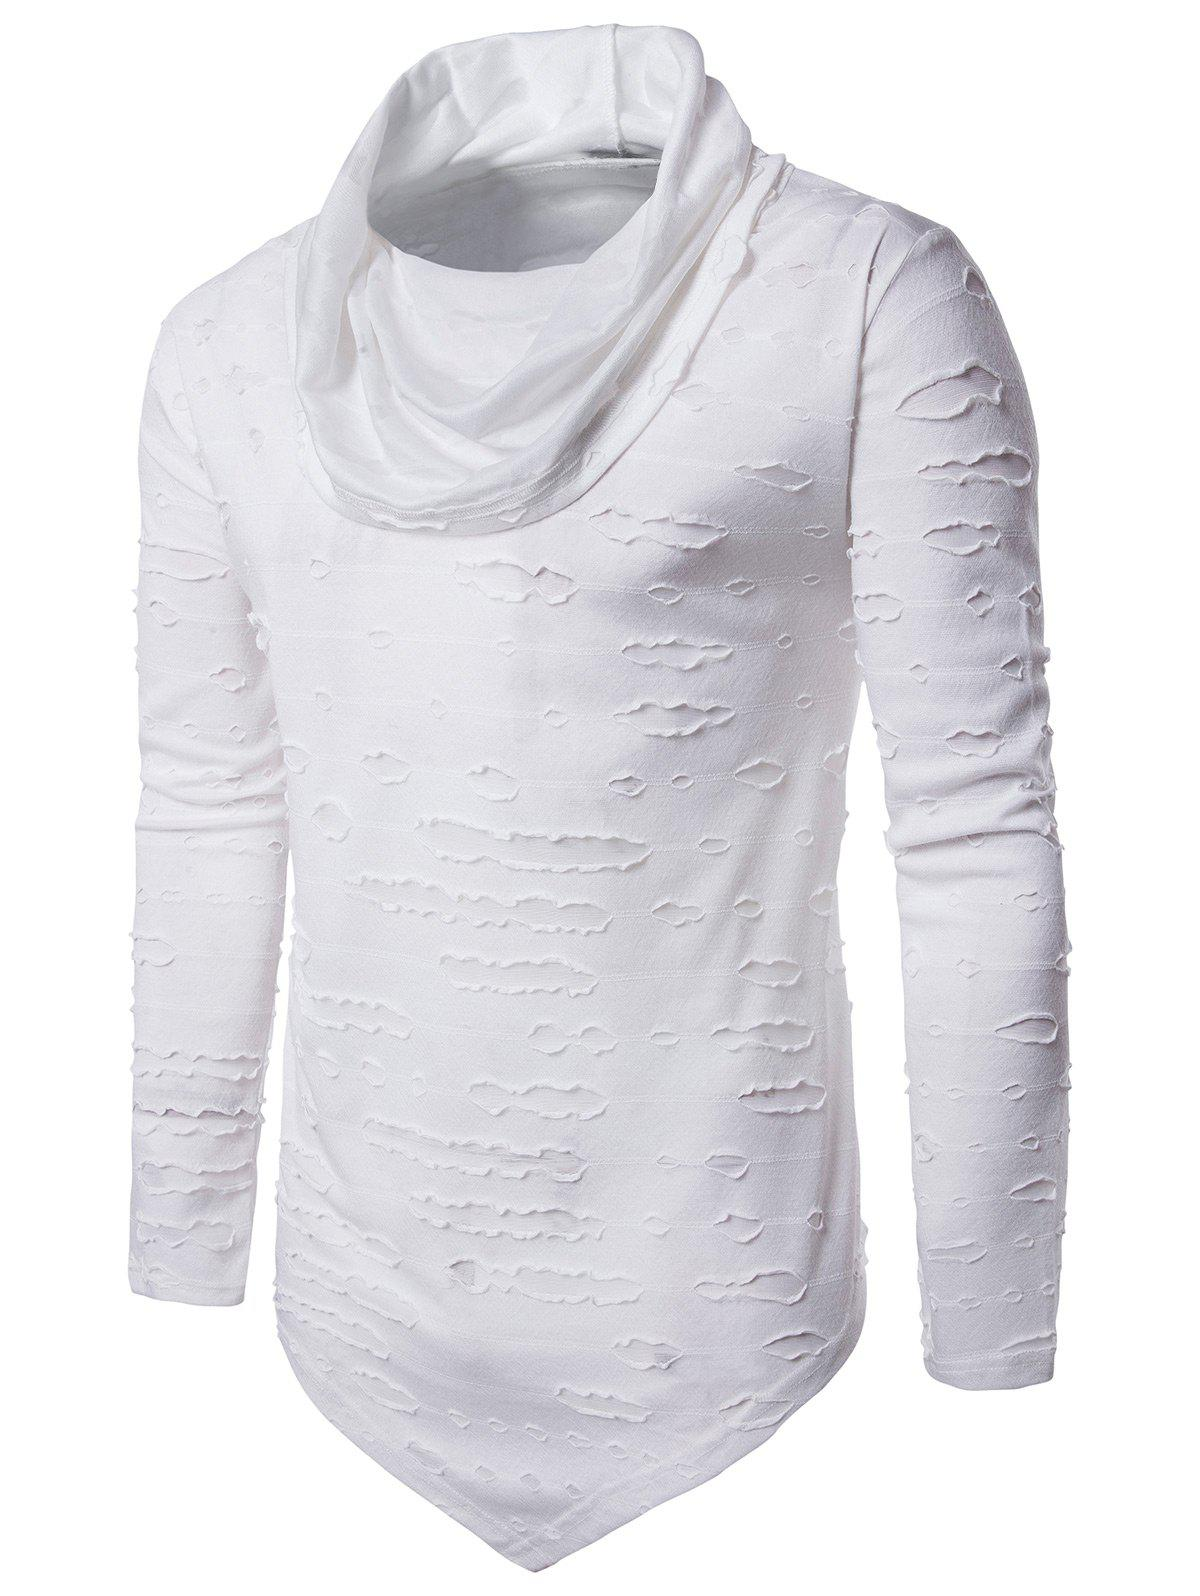 Distressed Triangle Bottom Asymmetric T-shirtMEN<br><br>Size: M; Color: WHITE; Material: Cotton,Polyester; Sleeve Length: Full; Collar: Cowl Neck; Style: Fashion,Punk,Rock; Embellishment: Hole; Pattern Type: Solid; Weight: 0.2935kg; Package Contents: 1 x T-shirt;